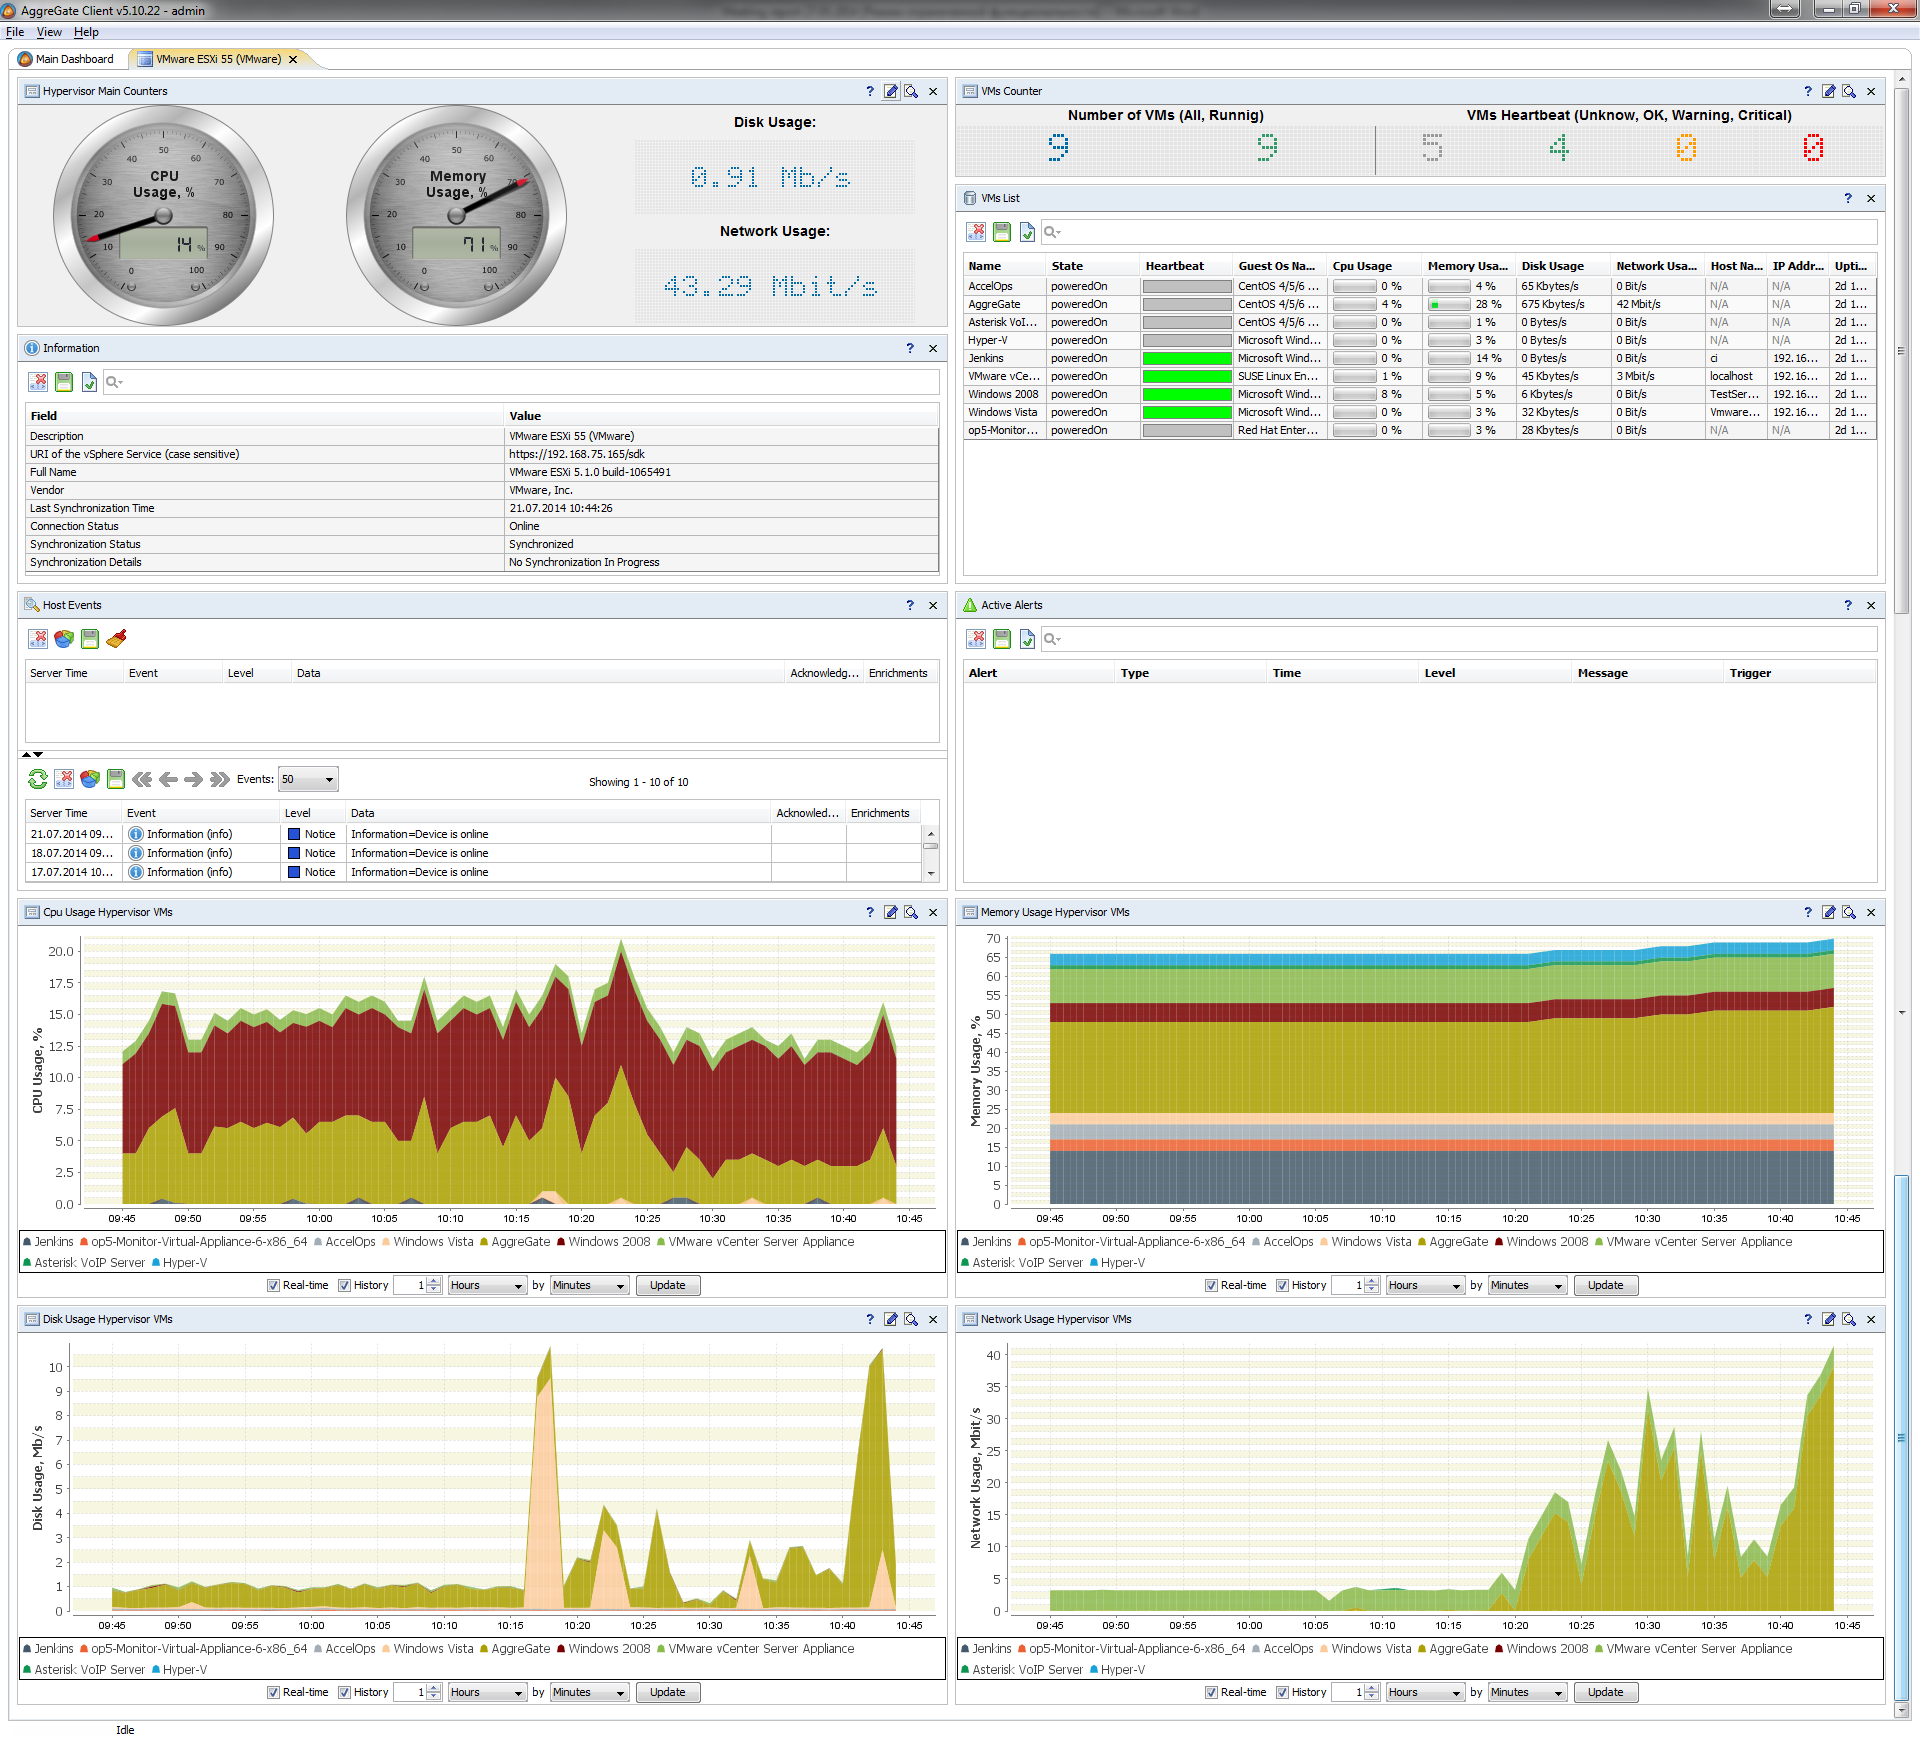 Health and performance tracking is supported for: VMware